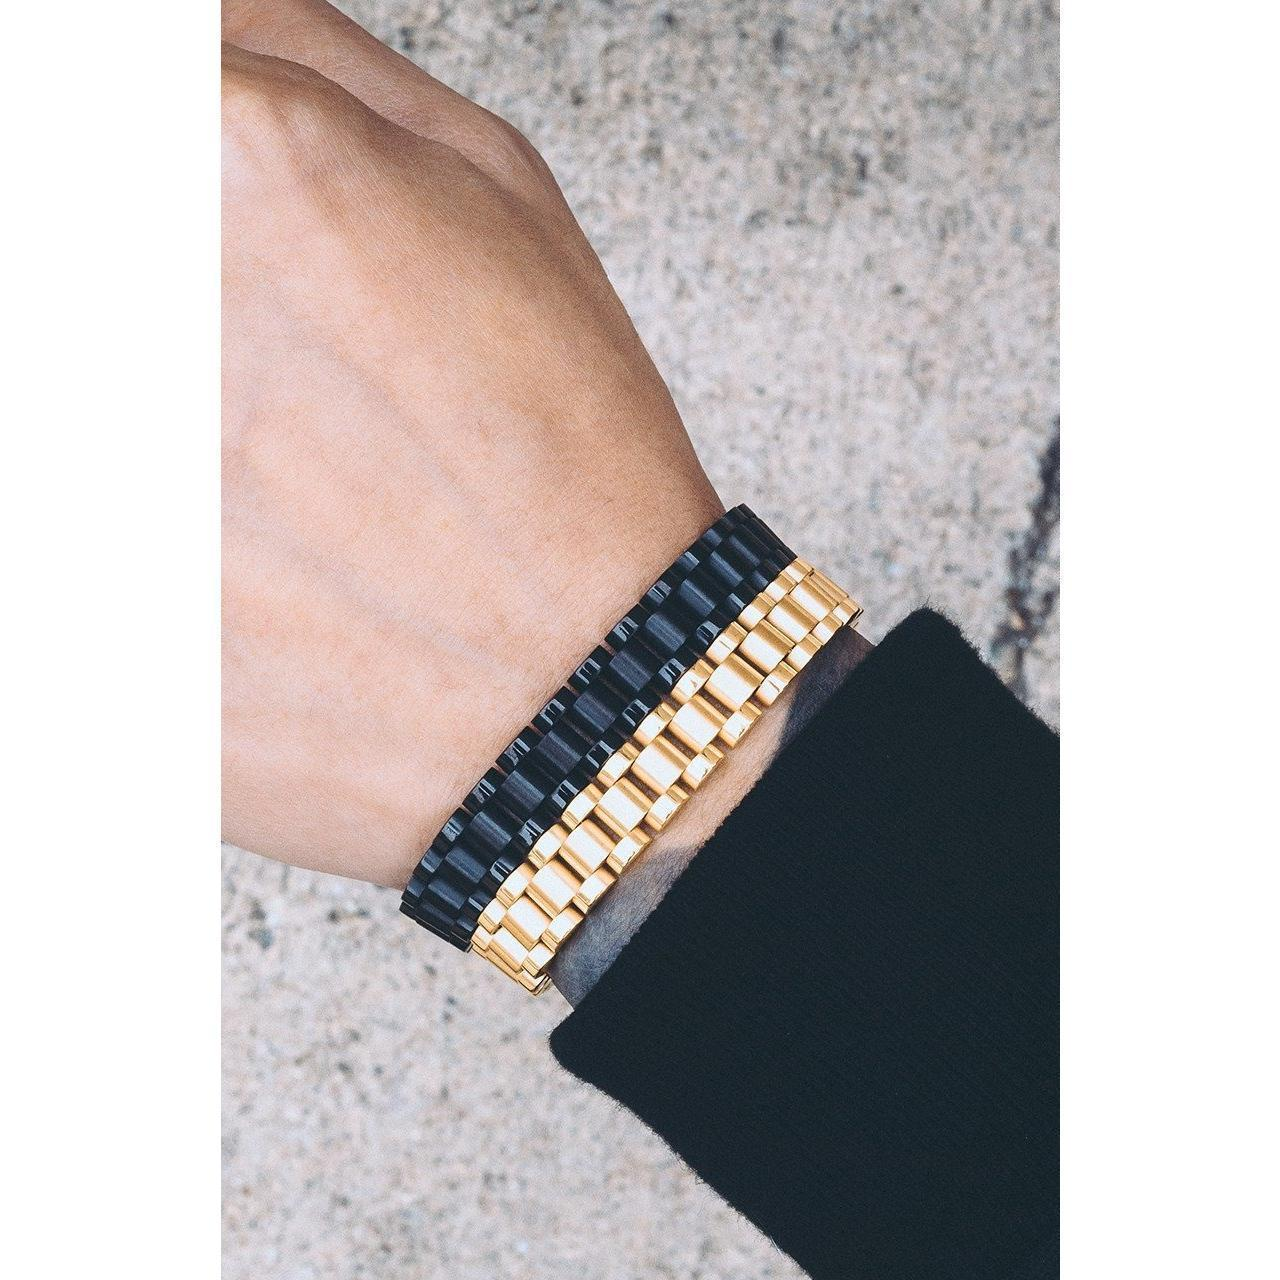 Mister Link Bracelet Mens Jewelry and Watches Mister SFC